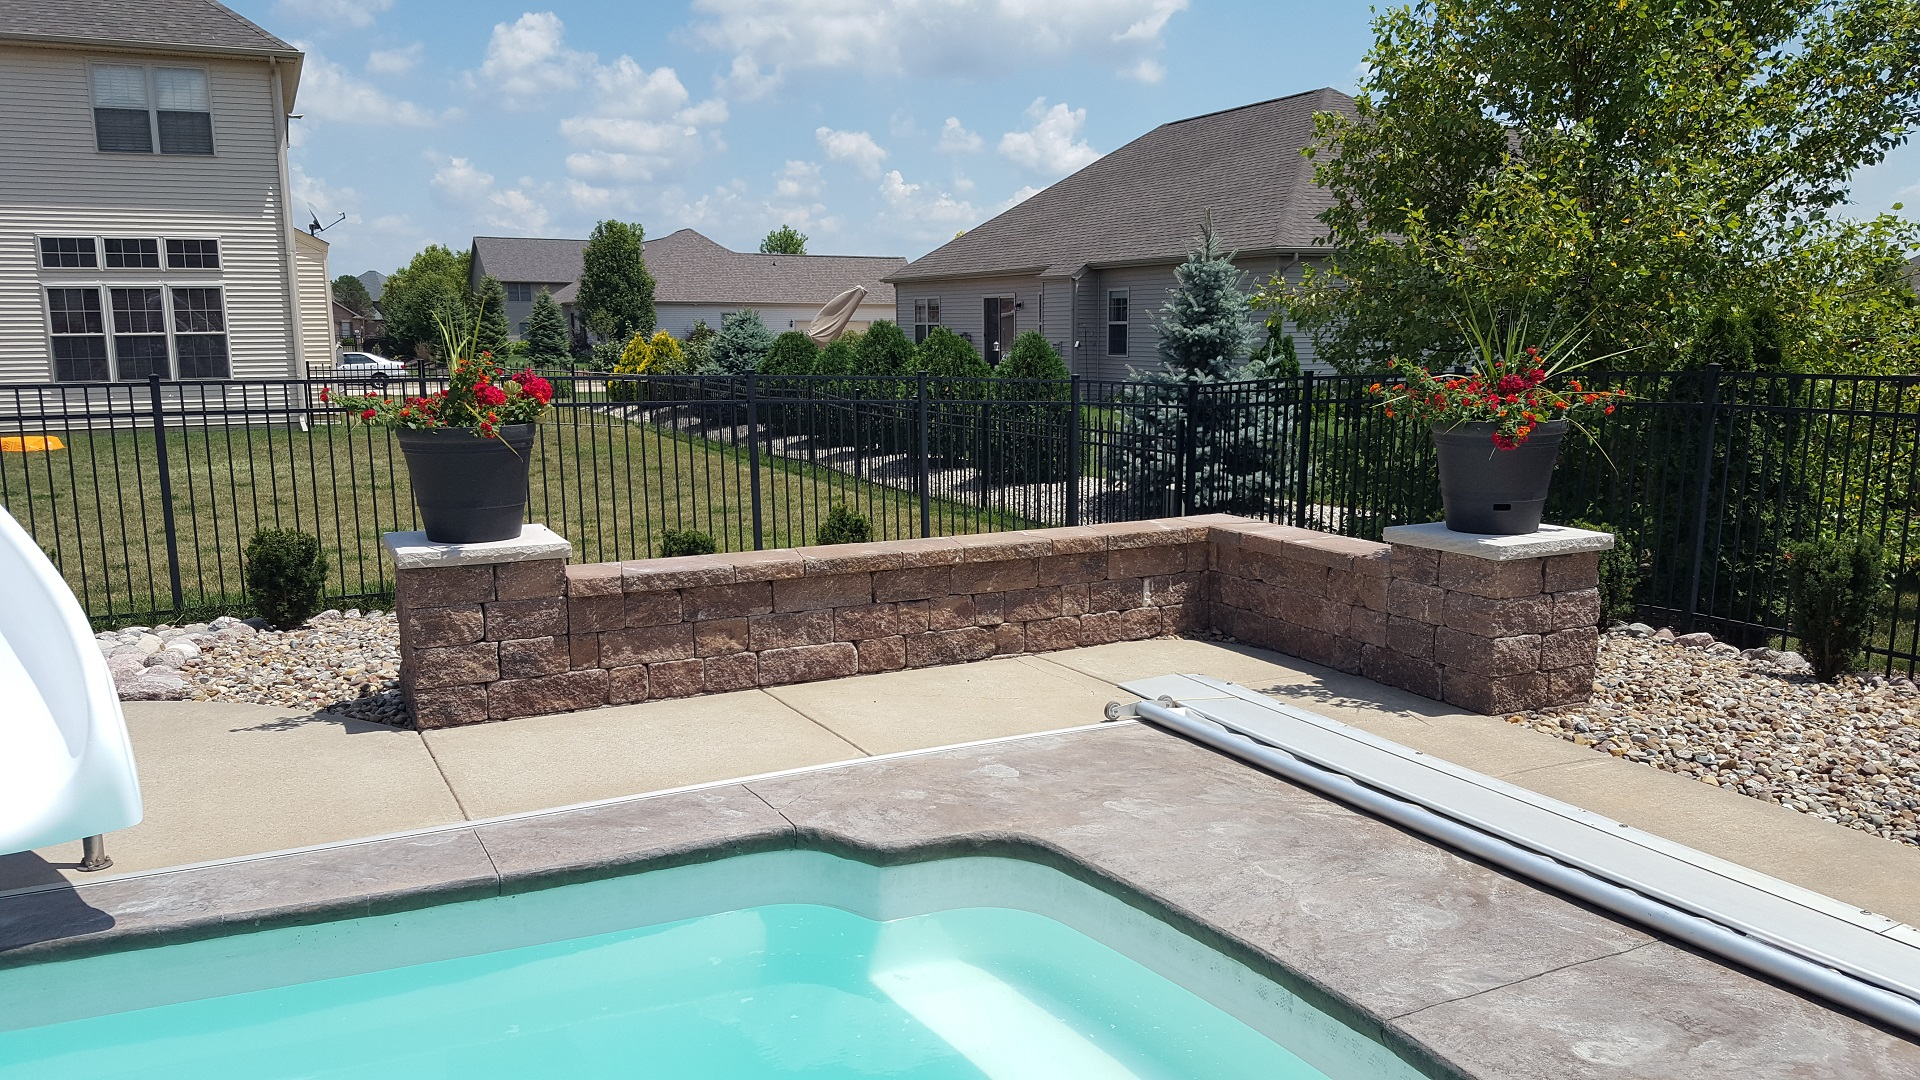 Copy of Copy of Copy of Copy of Copy of Pool patio with retaining wall in East Peoria, IL